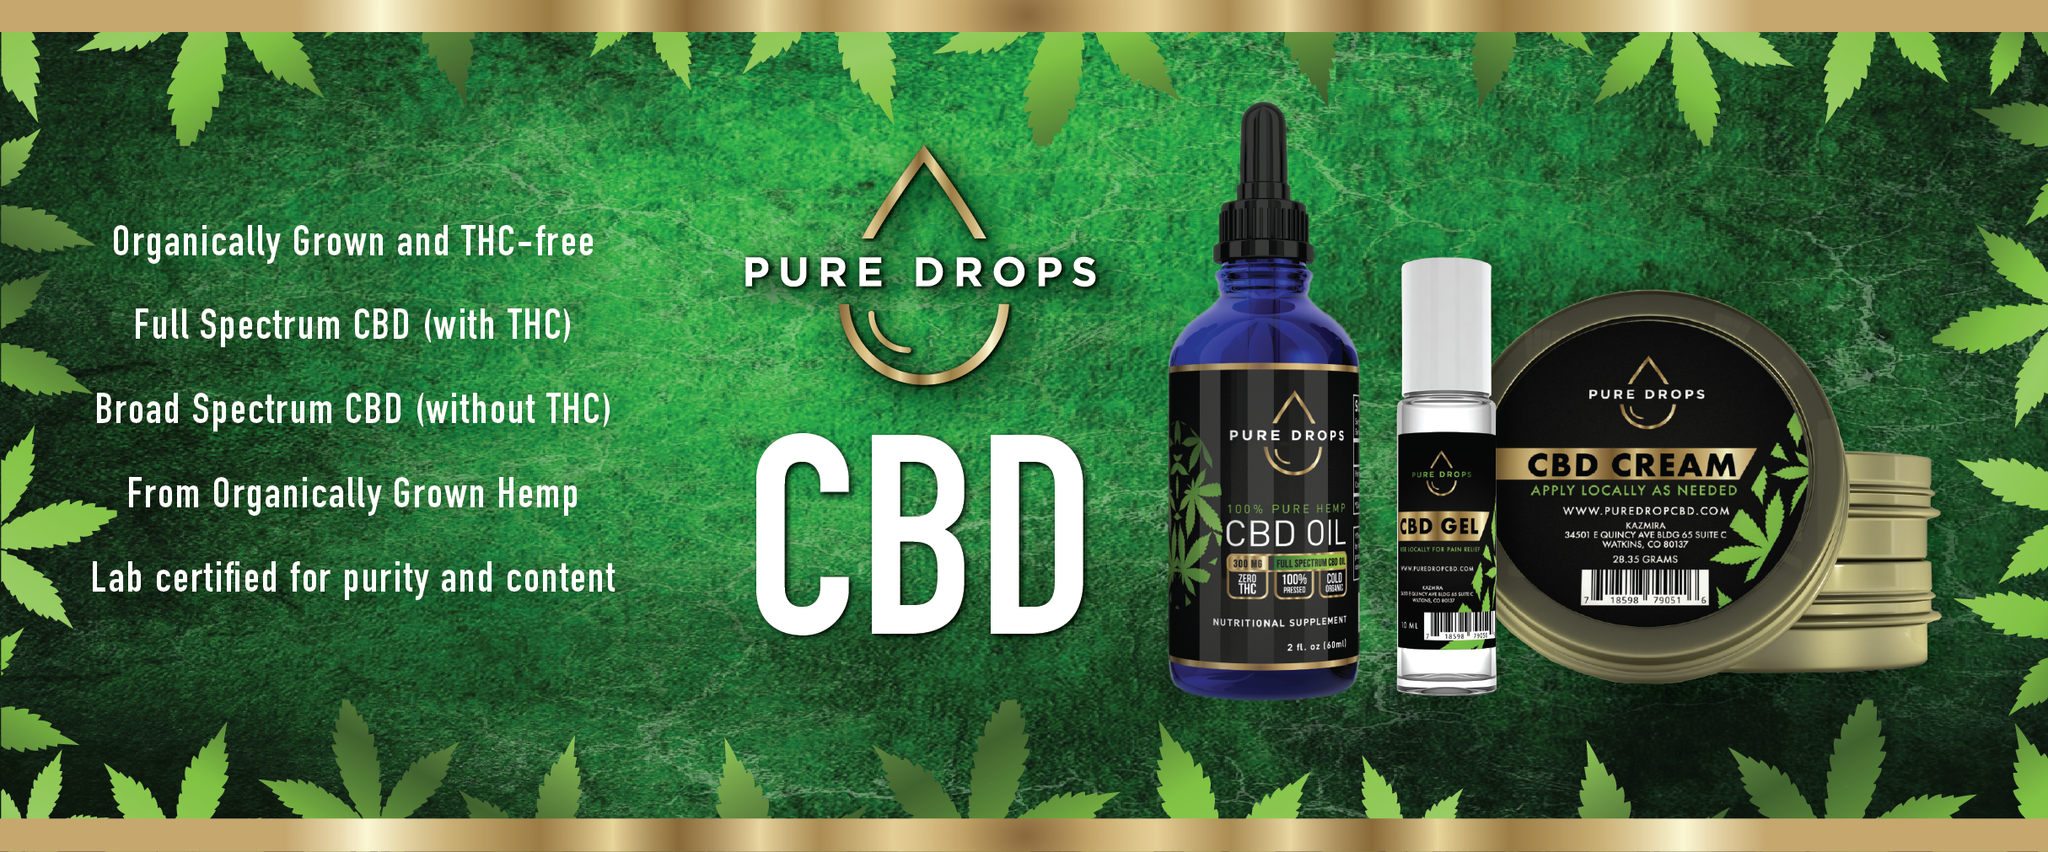 Collection of CBD products such as CBD oil, CBD cream and CBD gel